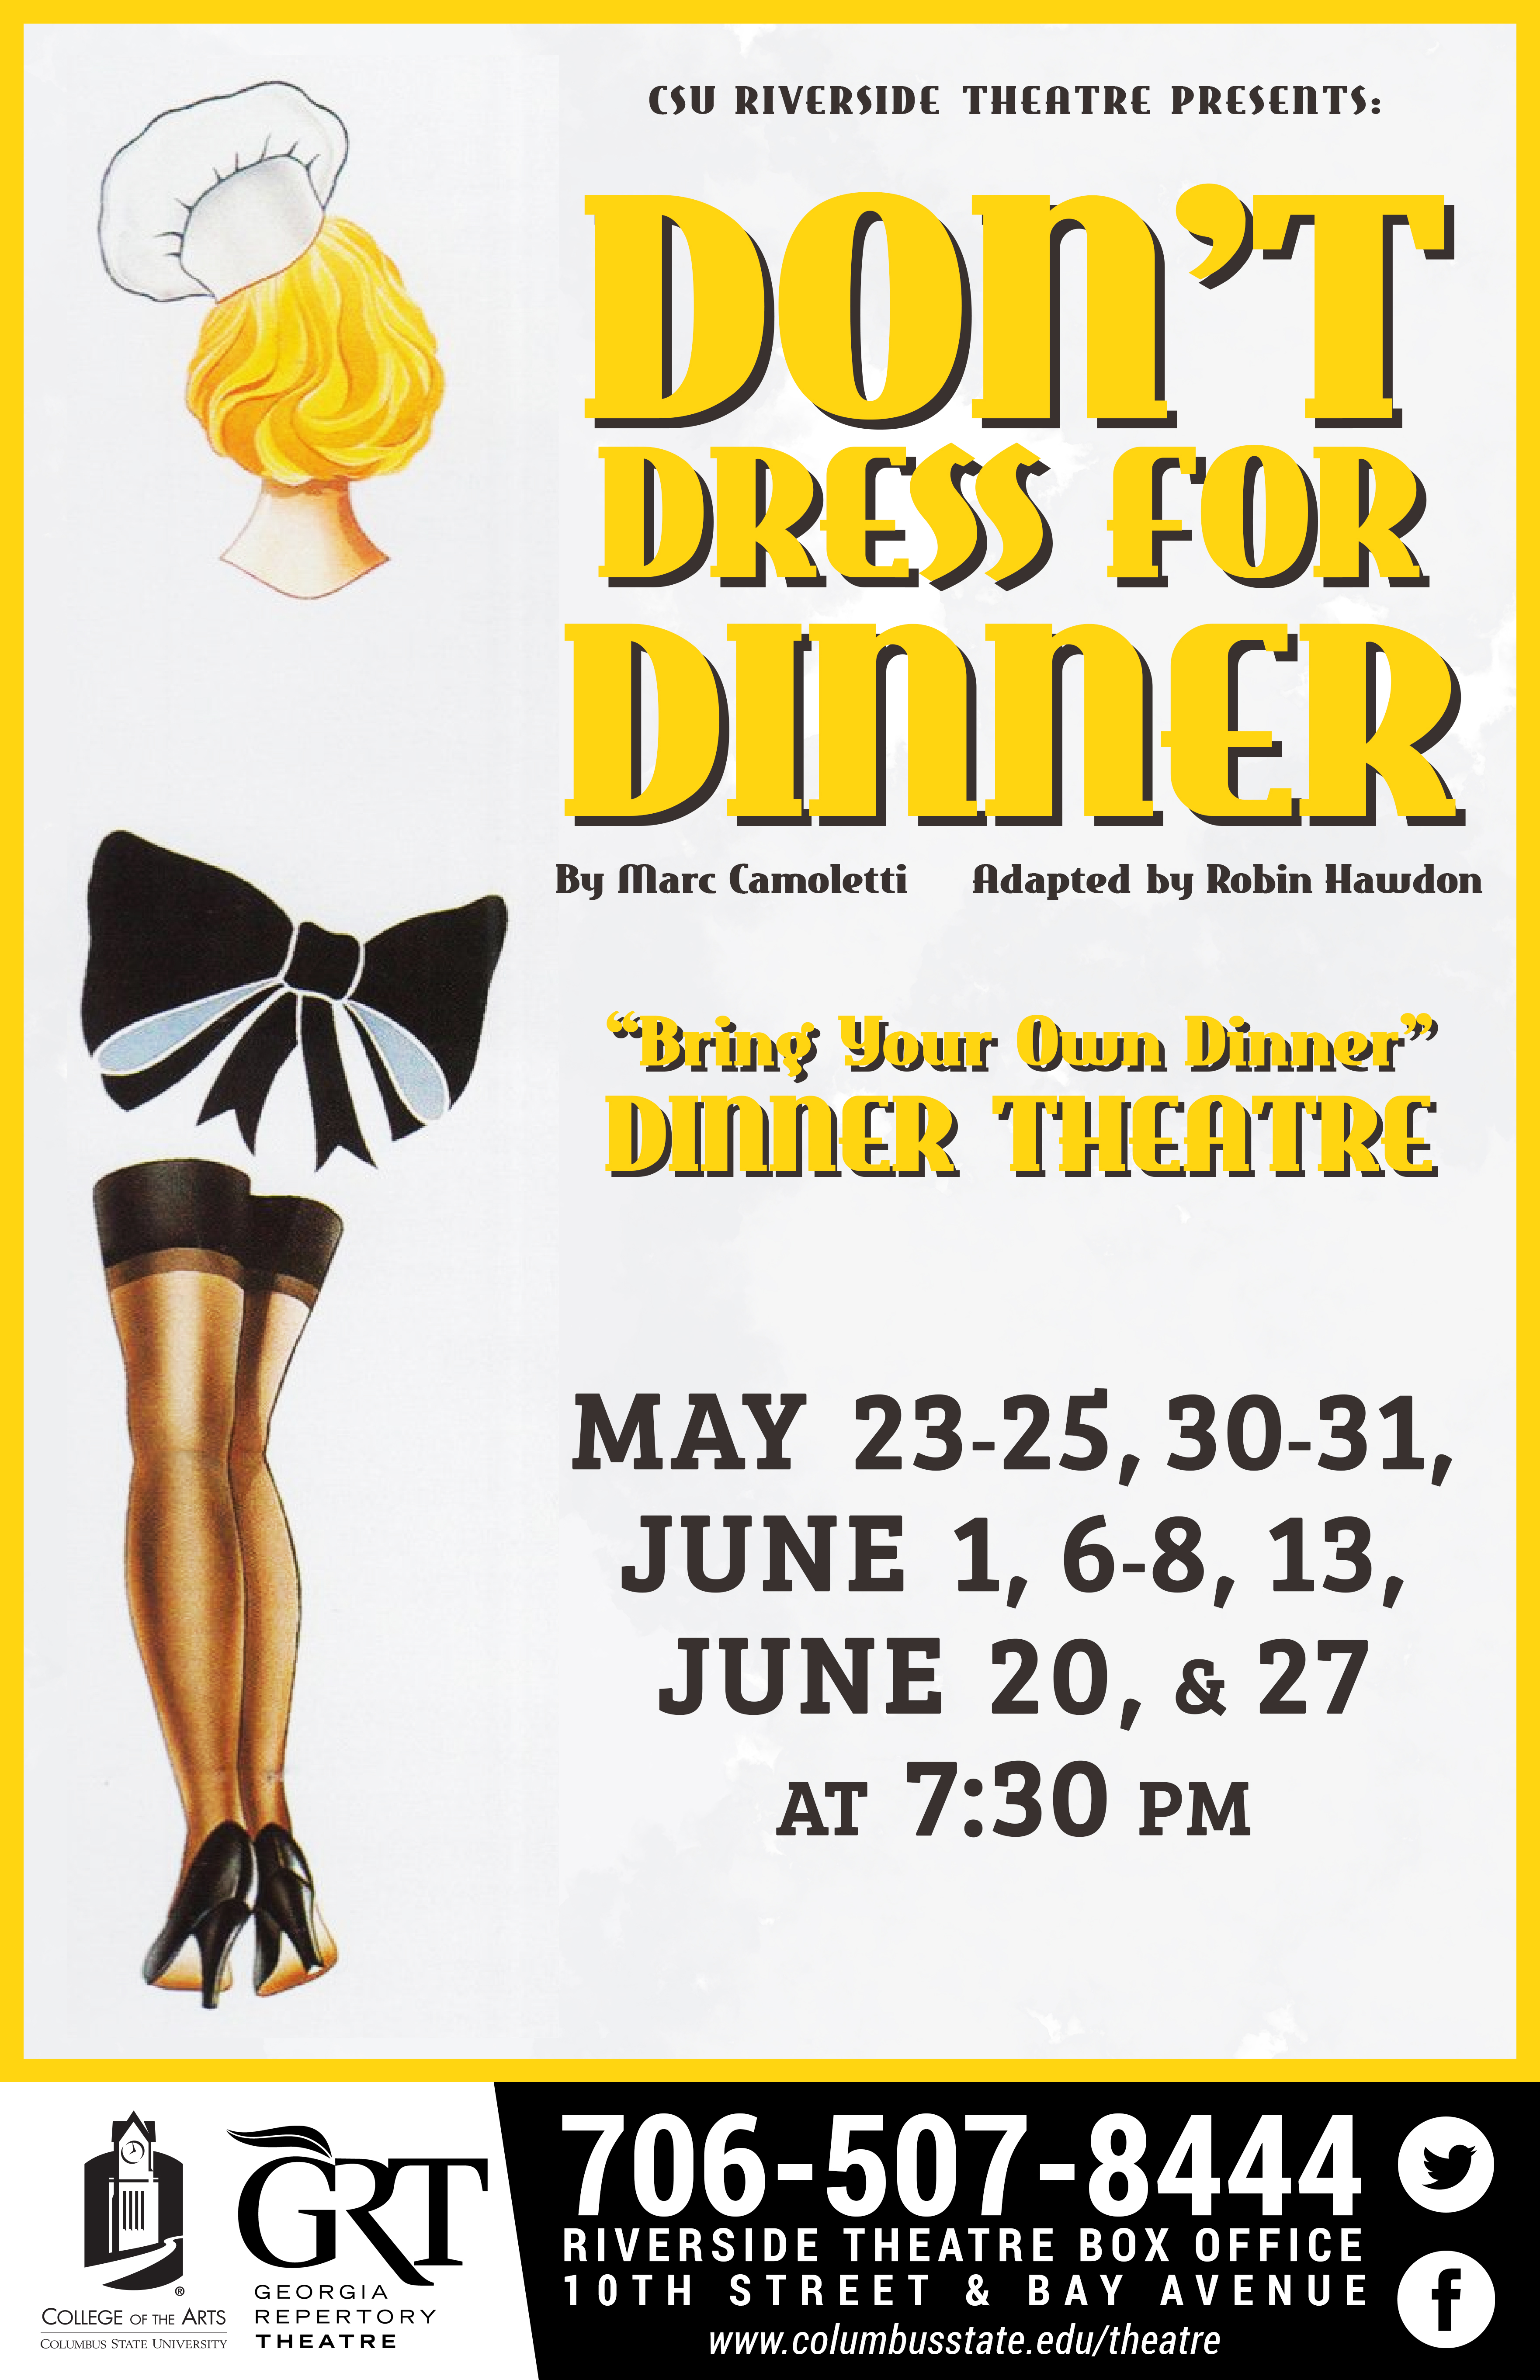 CSU Theatre: Don't Dress for Dinner